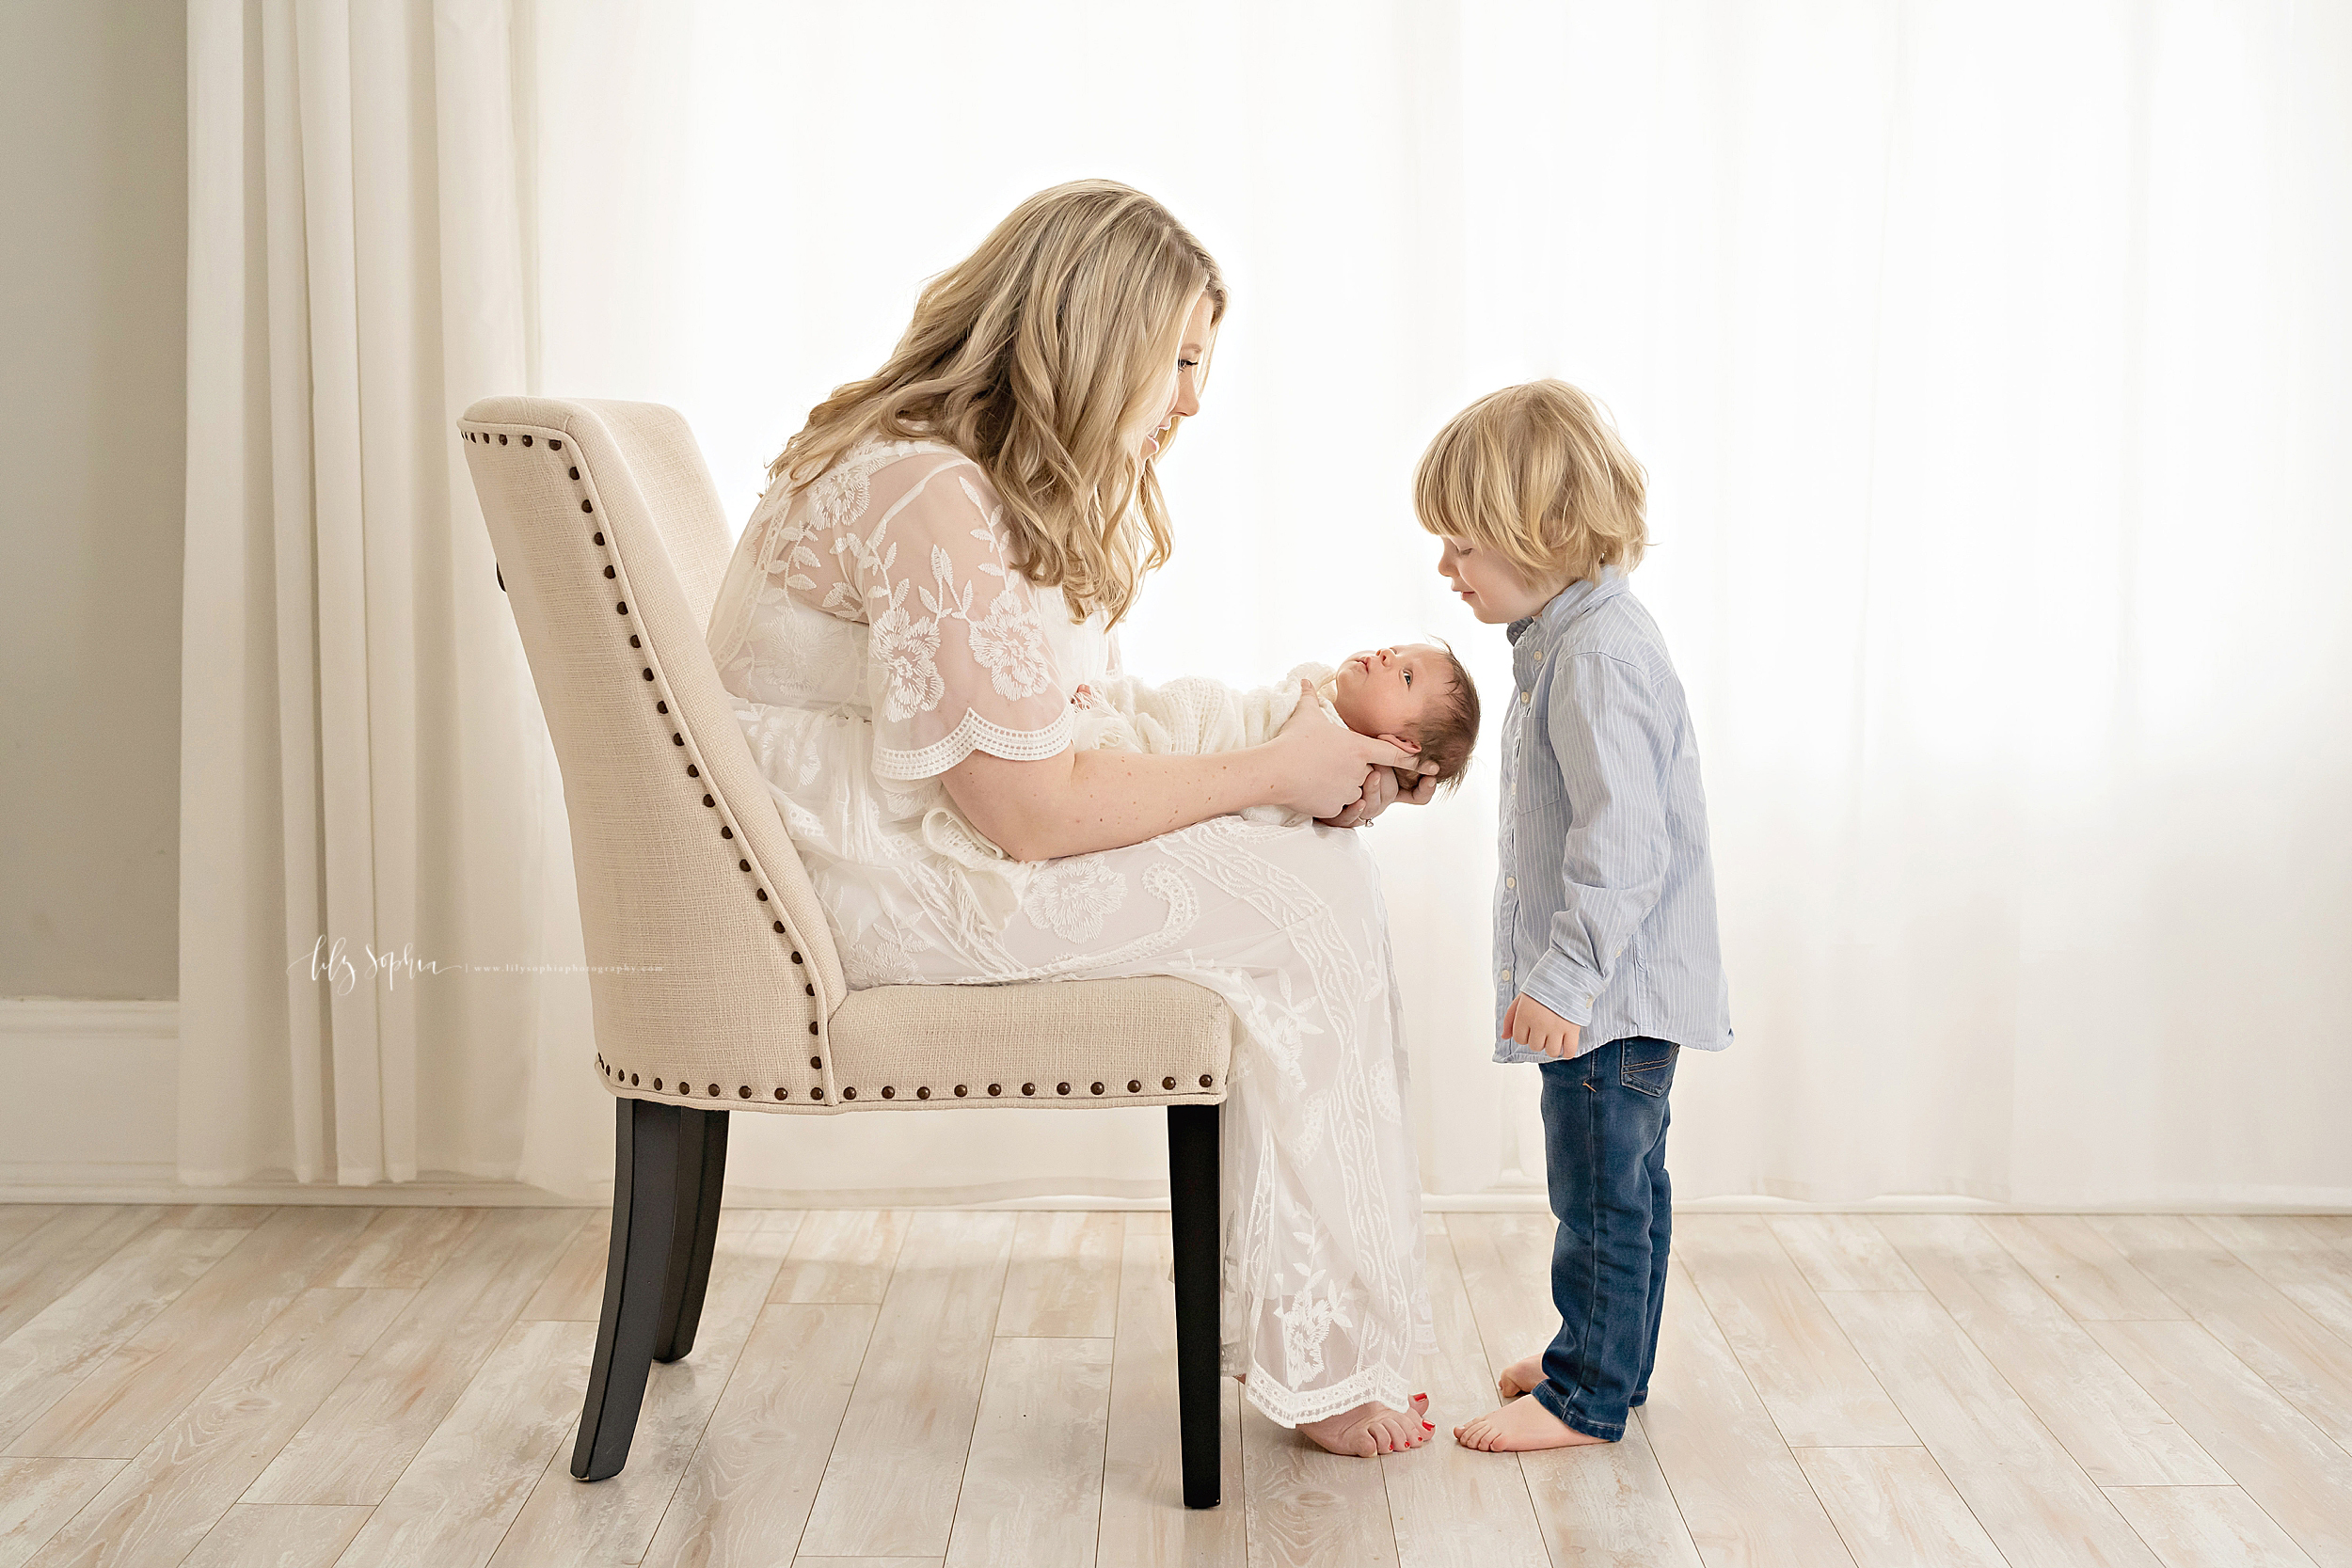 In an Atlanta natural light studio a mom sits in a nail trimmed cream linen chair with her infant son on her lap and her toddler son looking at his new brother. Mom is wearing a shear white embroidered full-length dress with scalloped short sleeves. Her infant is swaddled in a soft white blanket. Her toddler son is wearing a light blue long-sleeved buttoned-down shirt and blue jeans. Mom and son are barefoot.